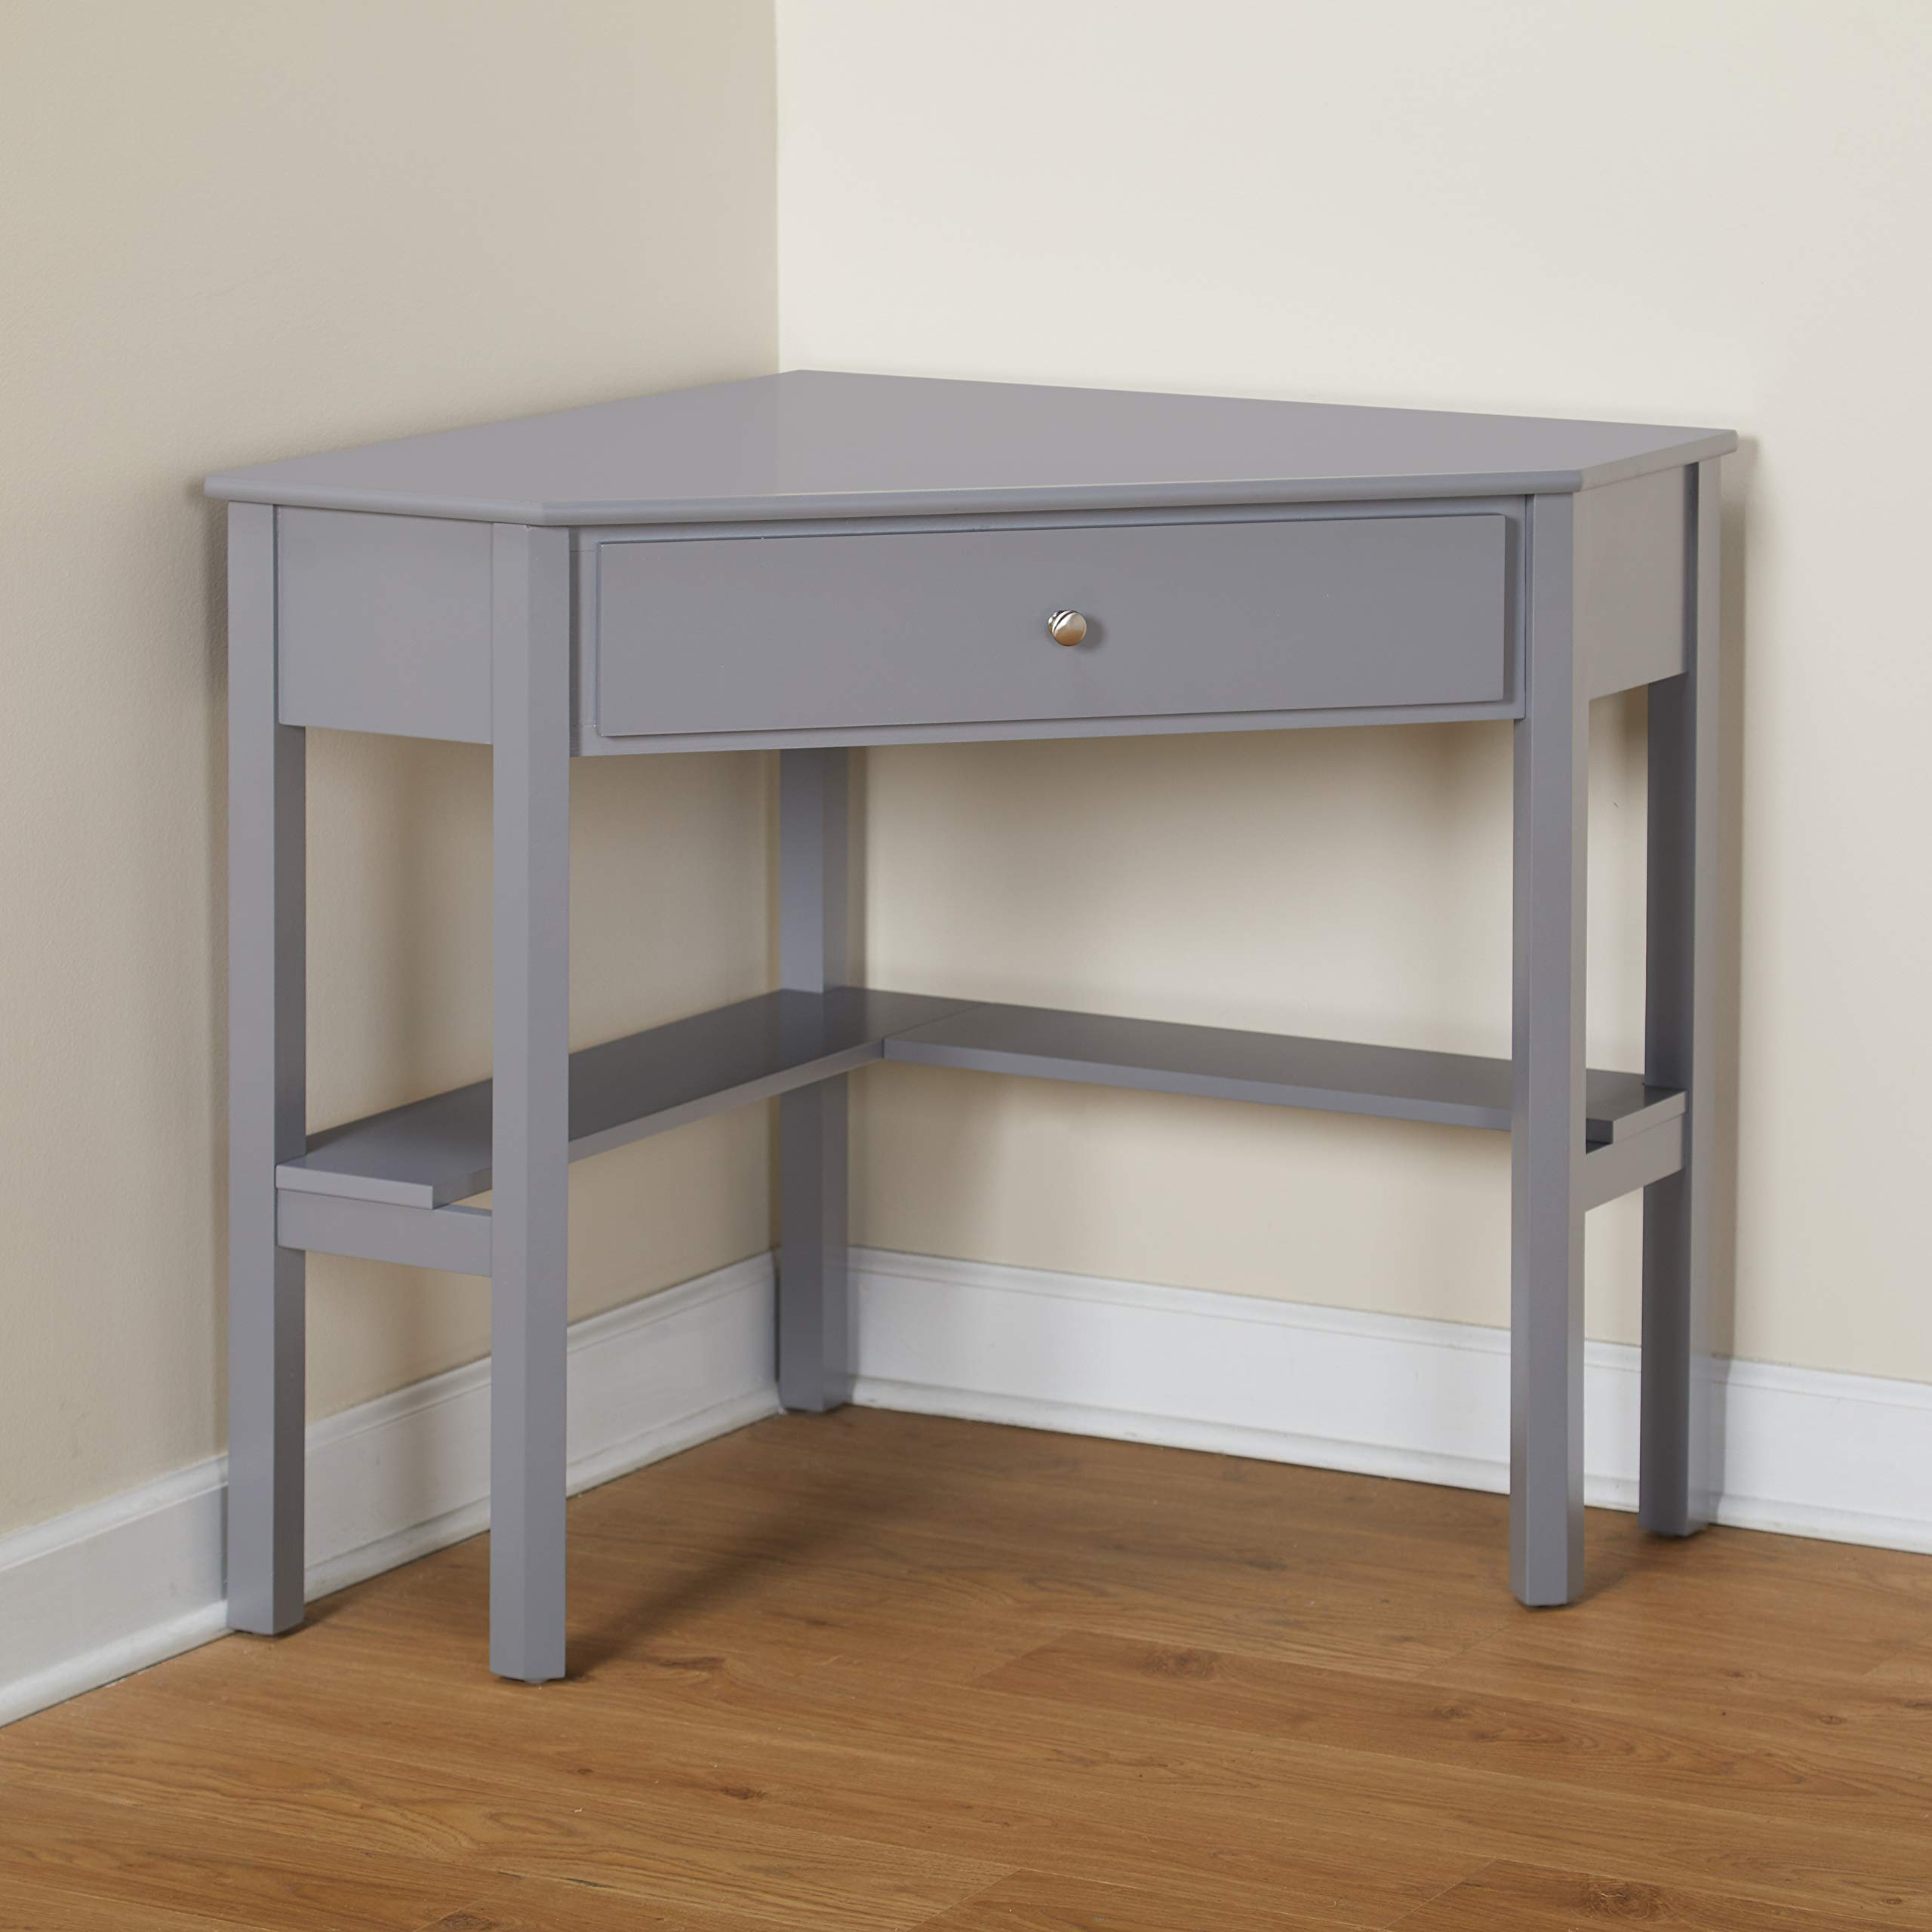 Target Marketing Systems Ellen Corner Desk with One Drawer and One Storage Shelf by Target Marketing Systems